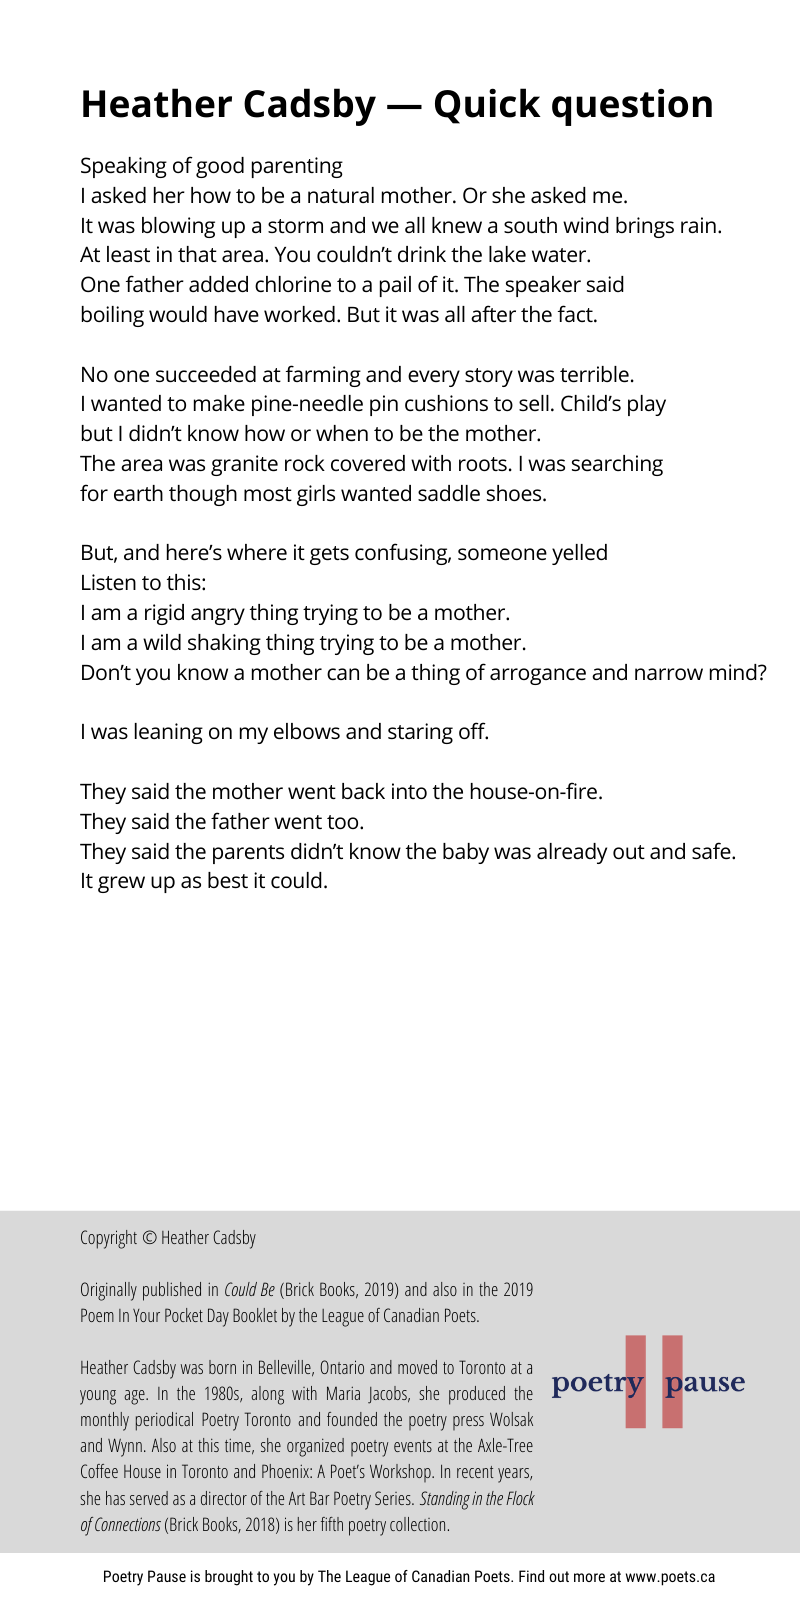 Poet name: Heather Cadsby Poem title: Quick question Poem: Speaking of good parenting I asked her how to be a natural mother. Or she asked me. It was blowing up a storm and we all knew a south wind brings rain. At least in that area. You couldn't drink the lake water. One father added chlorine to a pail of it. The speaker said boiling would have worked. But it was all after the fact. No one succeeded at farming and every story was terrible. I wanted to make pine-needle pin cushions to sell. Child's play but I didn't know how or when to be the mother. The area was granite rock covered with roots. I was searching for earth though most girls wanted saddle shoes. But, and here's where it gets confusing, someone yelled Listen to this: I am a rigid angry thing trying to be a mother. I am a wild shaking thing trying to be a mother. Don't you know a mother can be a thing of arrogance and narrow mind? I was leaning on my elbows and staring off. They said the mother went back into the house-on-fire. They said the father went too. They said the parents didn't know the baby was already out and safe. It grew up as best it could. End of poem. Credits: Copyright © Heather Cadsby Originally published in Could Be (Brick Books, 2019) and also in the 2019 Poem In Your Pocket Day Booklet by the League of Canadian Poets. Heather Cadsby was born in Belleville, Ontario and moved to Toronto at a young age. In the 1980s, along with Maria Jacobs, she produced the monthly periodical Poetry Toronto and founded the poetry press Wolsak and Wynn. Also at this time, she organized poetry events at the Axle-Tree Coffee House in Toronto and Phoenix: A Poet's Workshop. In recent years, she has served as a director of the Art Bar Poetry Series. Standing in the Flock of Connections (Brick Books, 2018) is her fifth poetry collection.